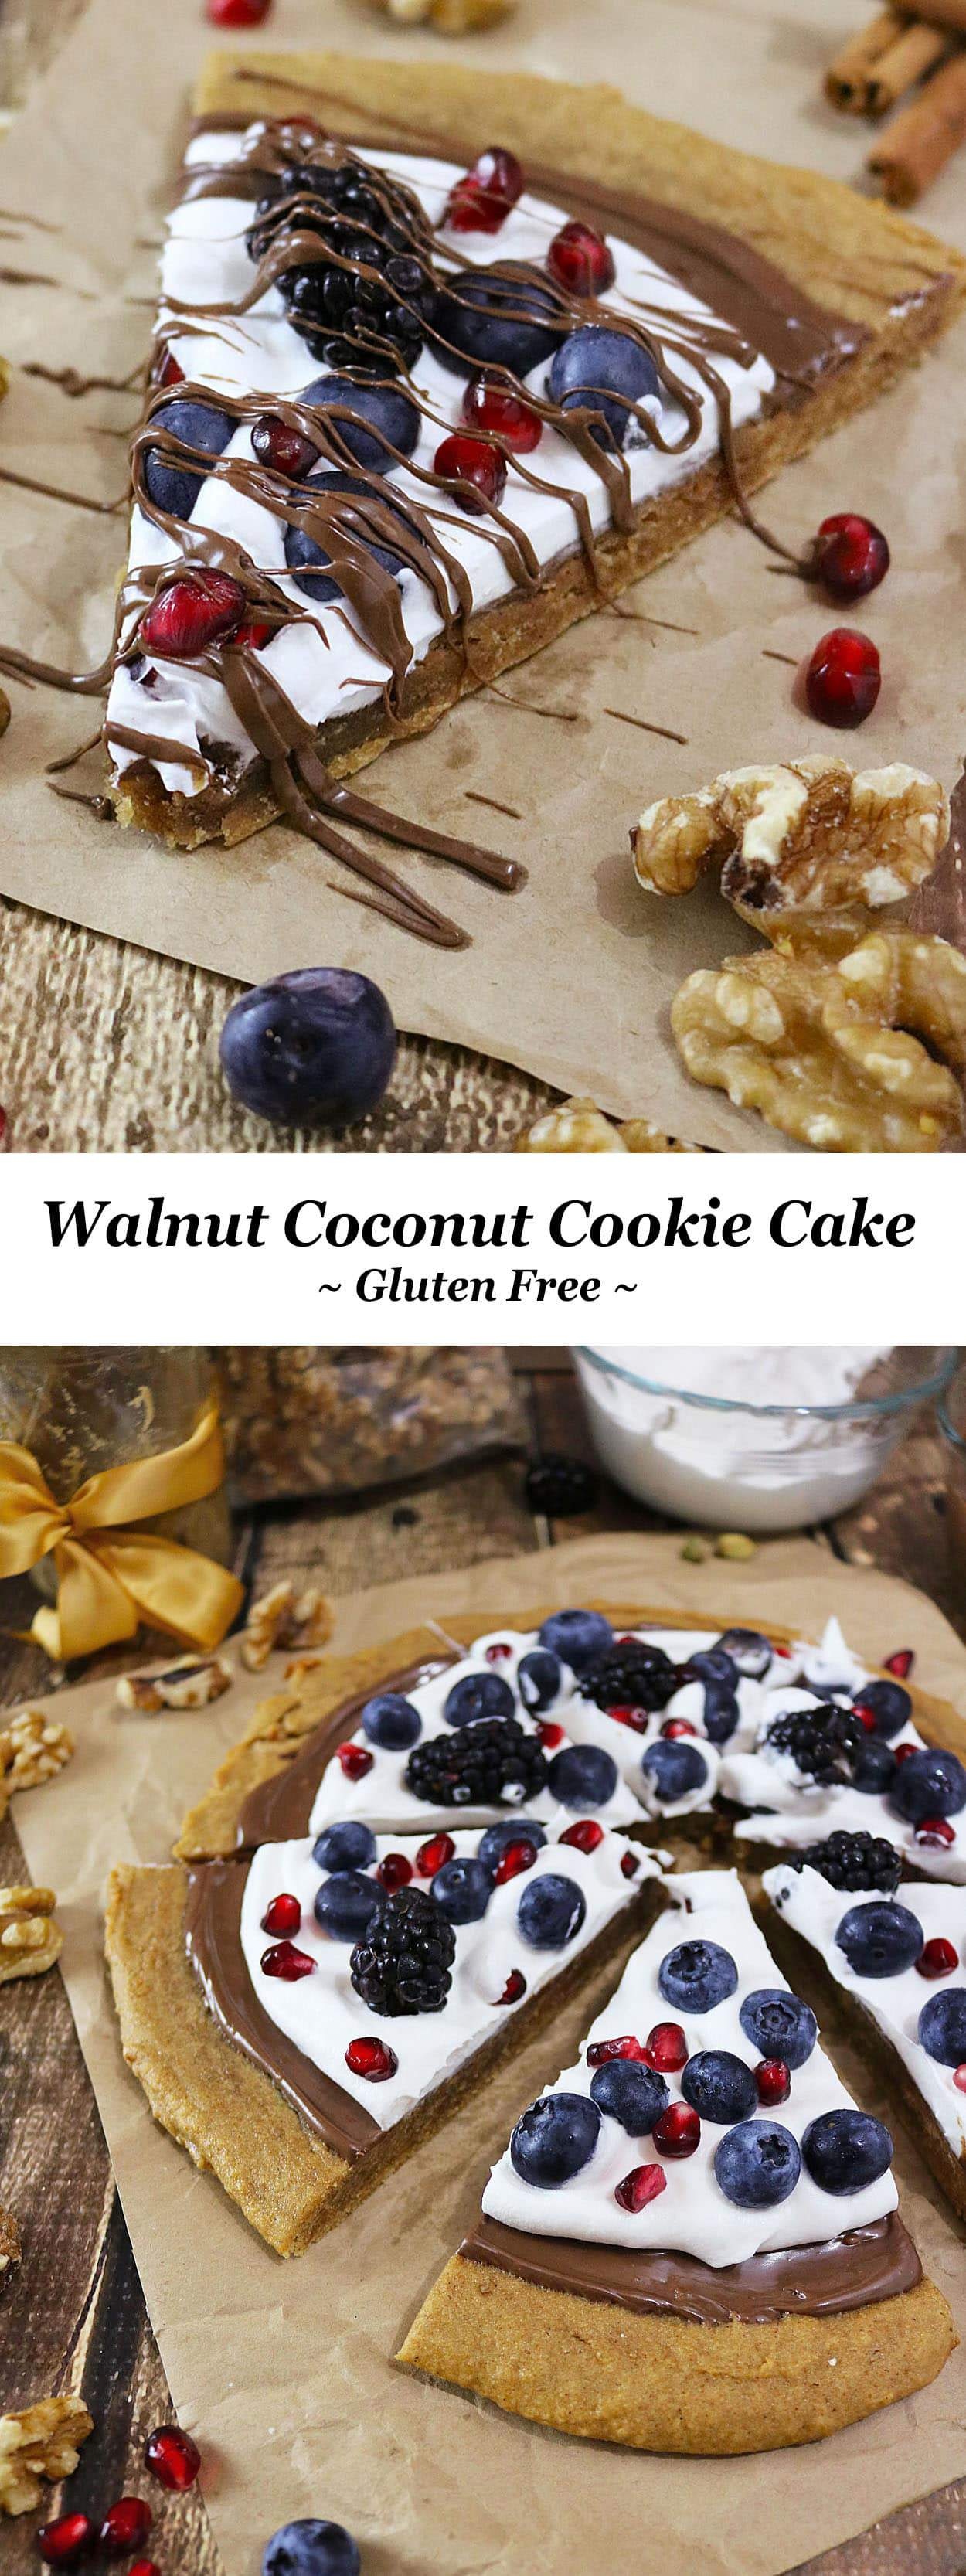 Spiced Walnut Coconut Cookie Cake with chocolate, blueberries and pomegranate - perfect for the fourth of July